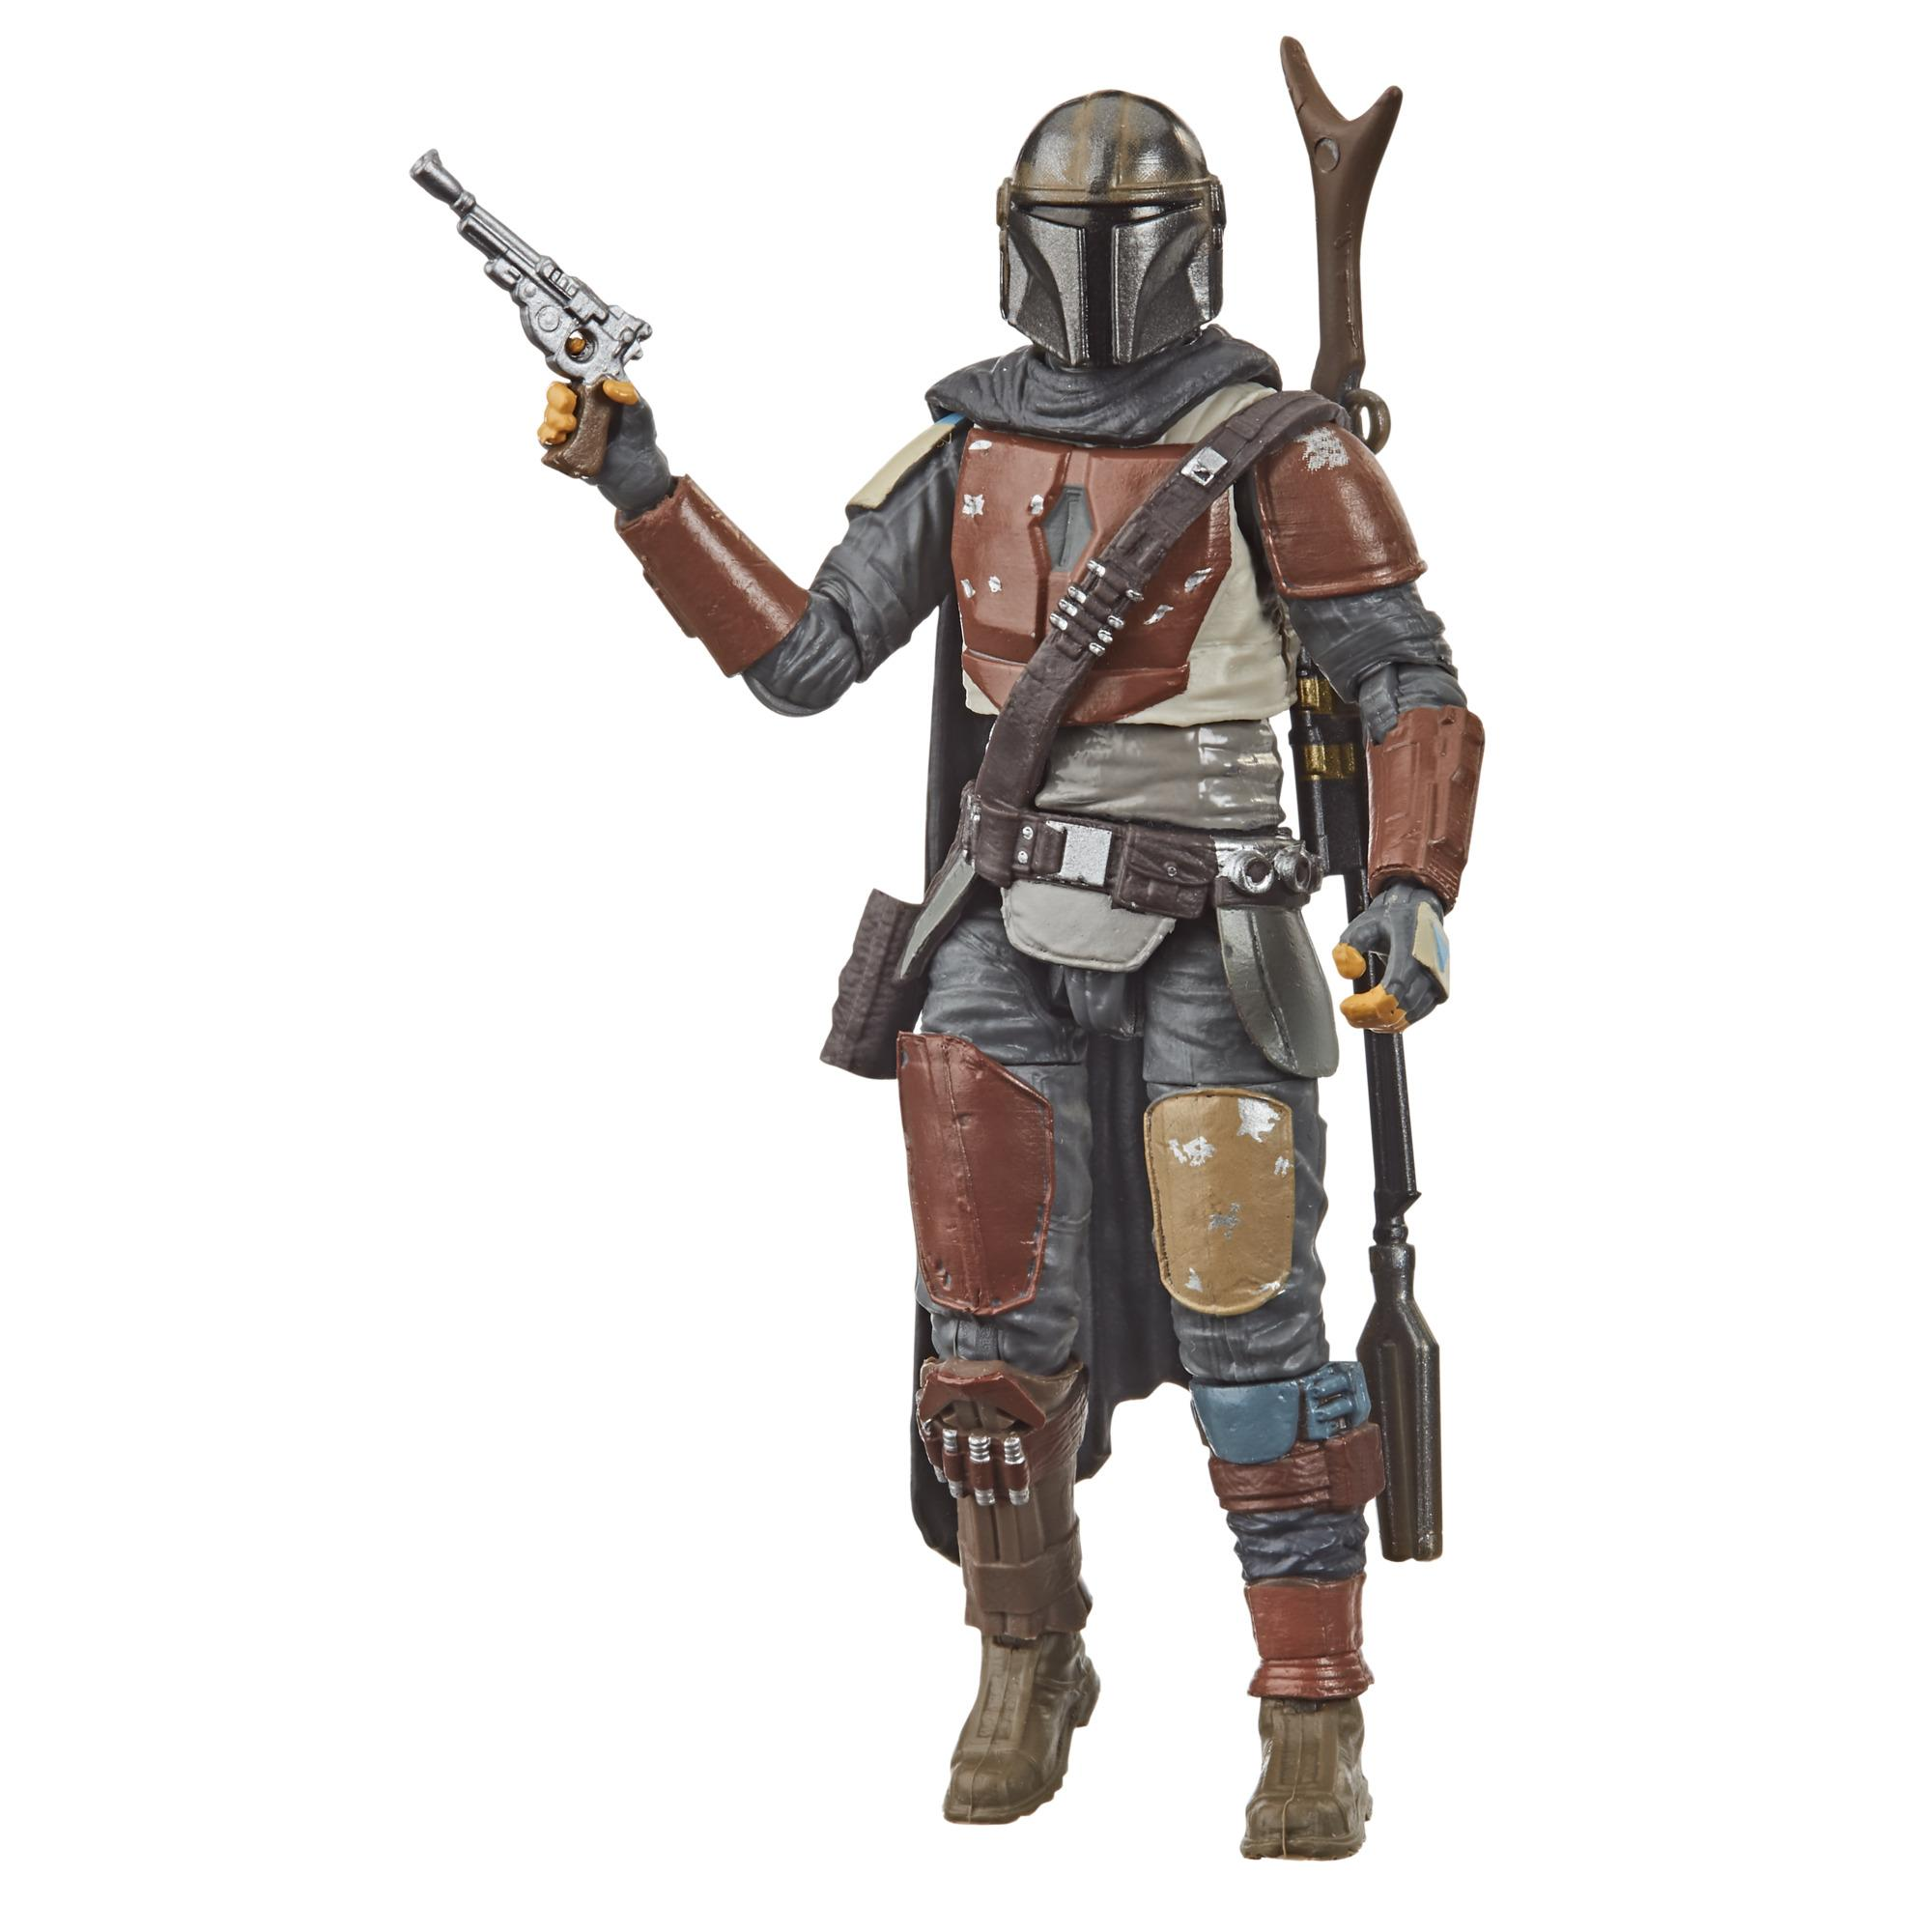 Star Wars The Vintage Collection The Mandalorian Toy, 3.75-inch Scale Action Figure, Toys for Kids Ages 4 and Up